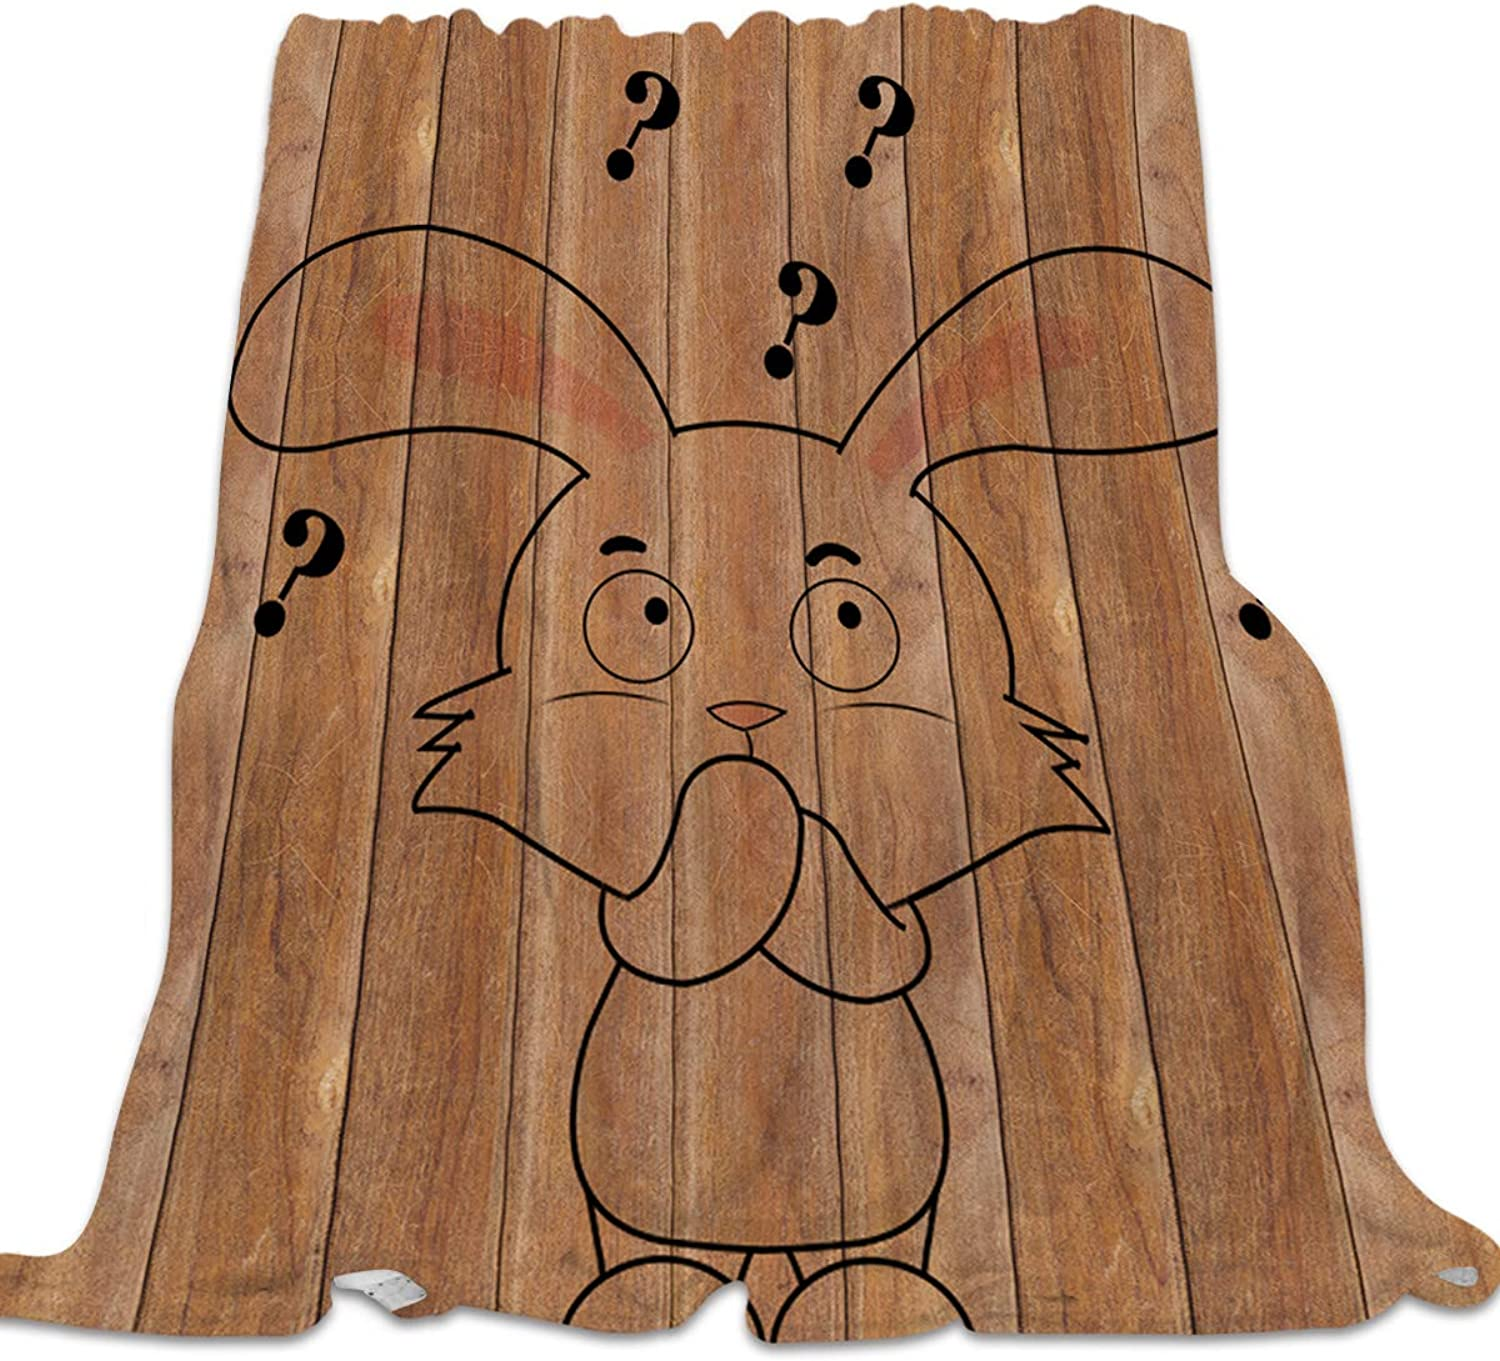 YEHO Art Gallery Soft Flannel Fleece Bed Blanket Throw-Blankets for Girls Boys,Cartoon Rabbit Animal Wood Grain Pattern,Lightweight Warm Blankets for Bedroom Living Room Sofa Couch,39x49inch